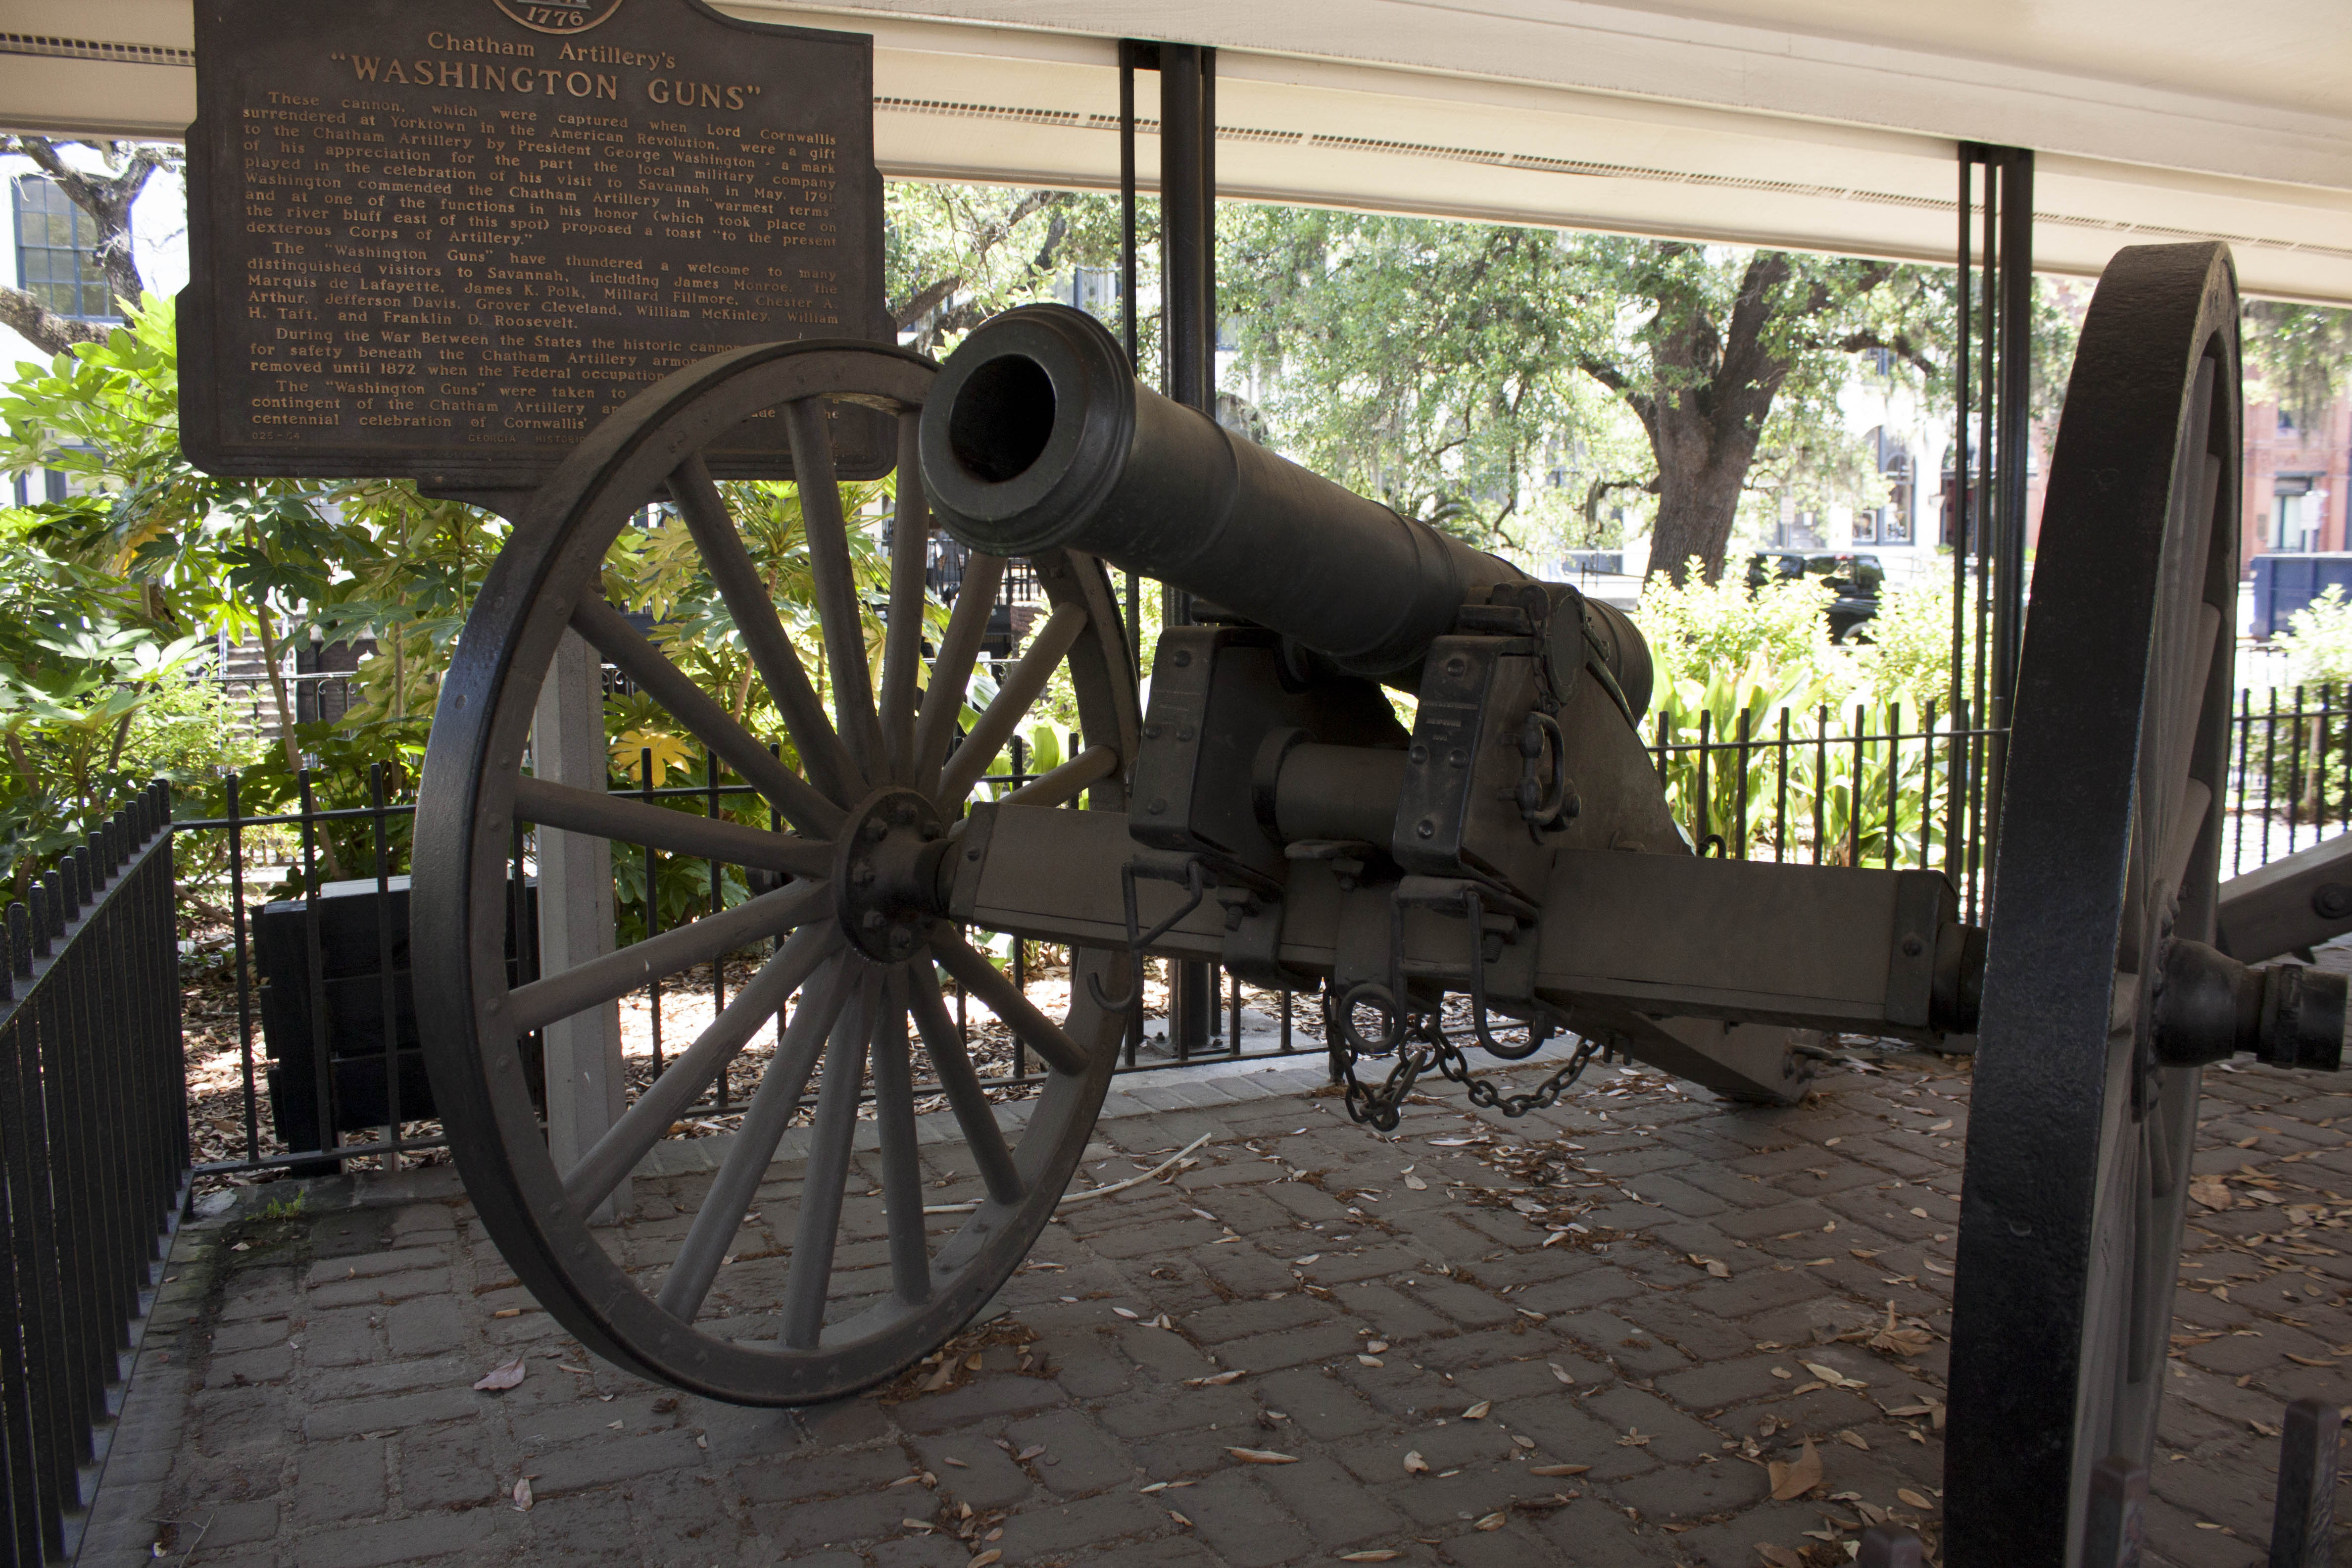 Savannah's Historic Monuments on River Street